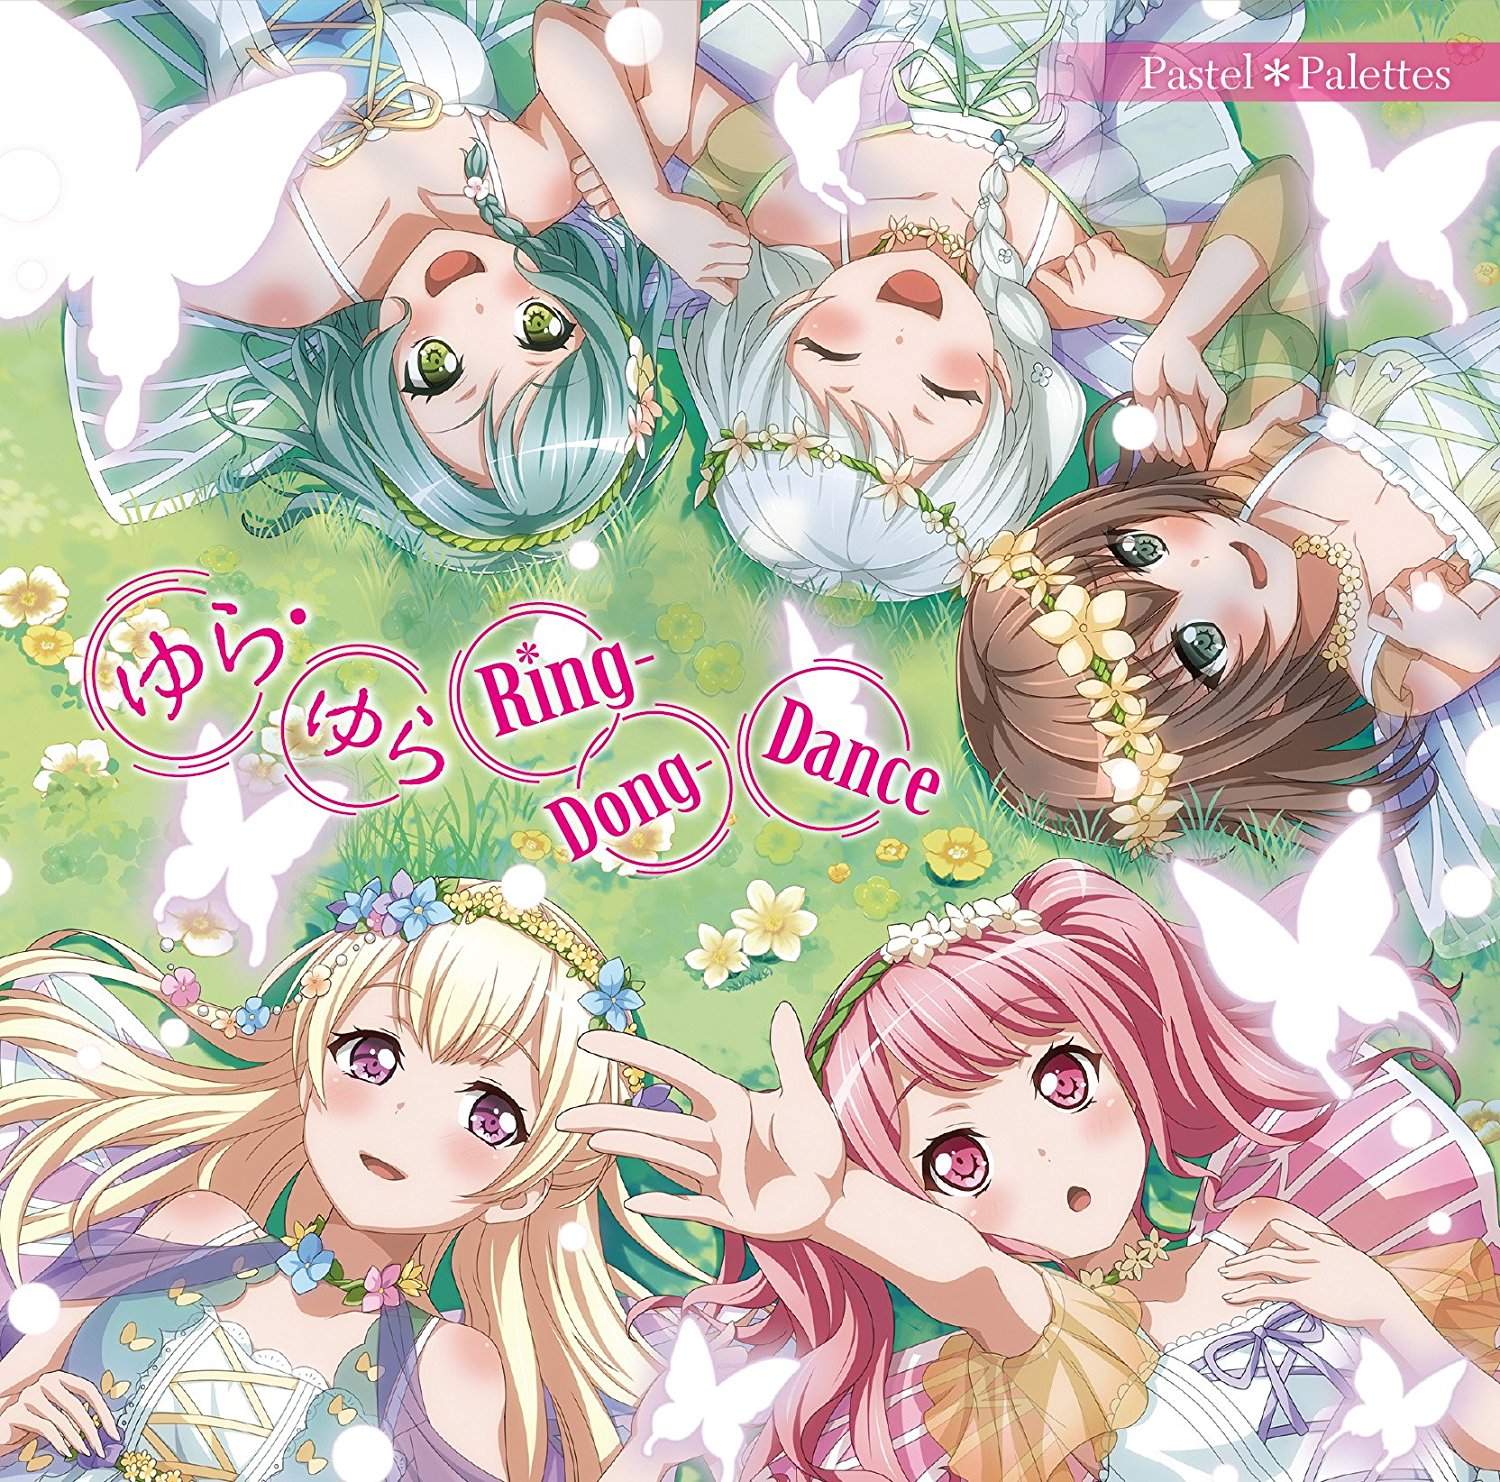 BanG Dream!: Pastel*Palettes – Yura Yura Ring-Dong-Dance